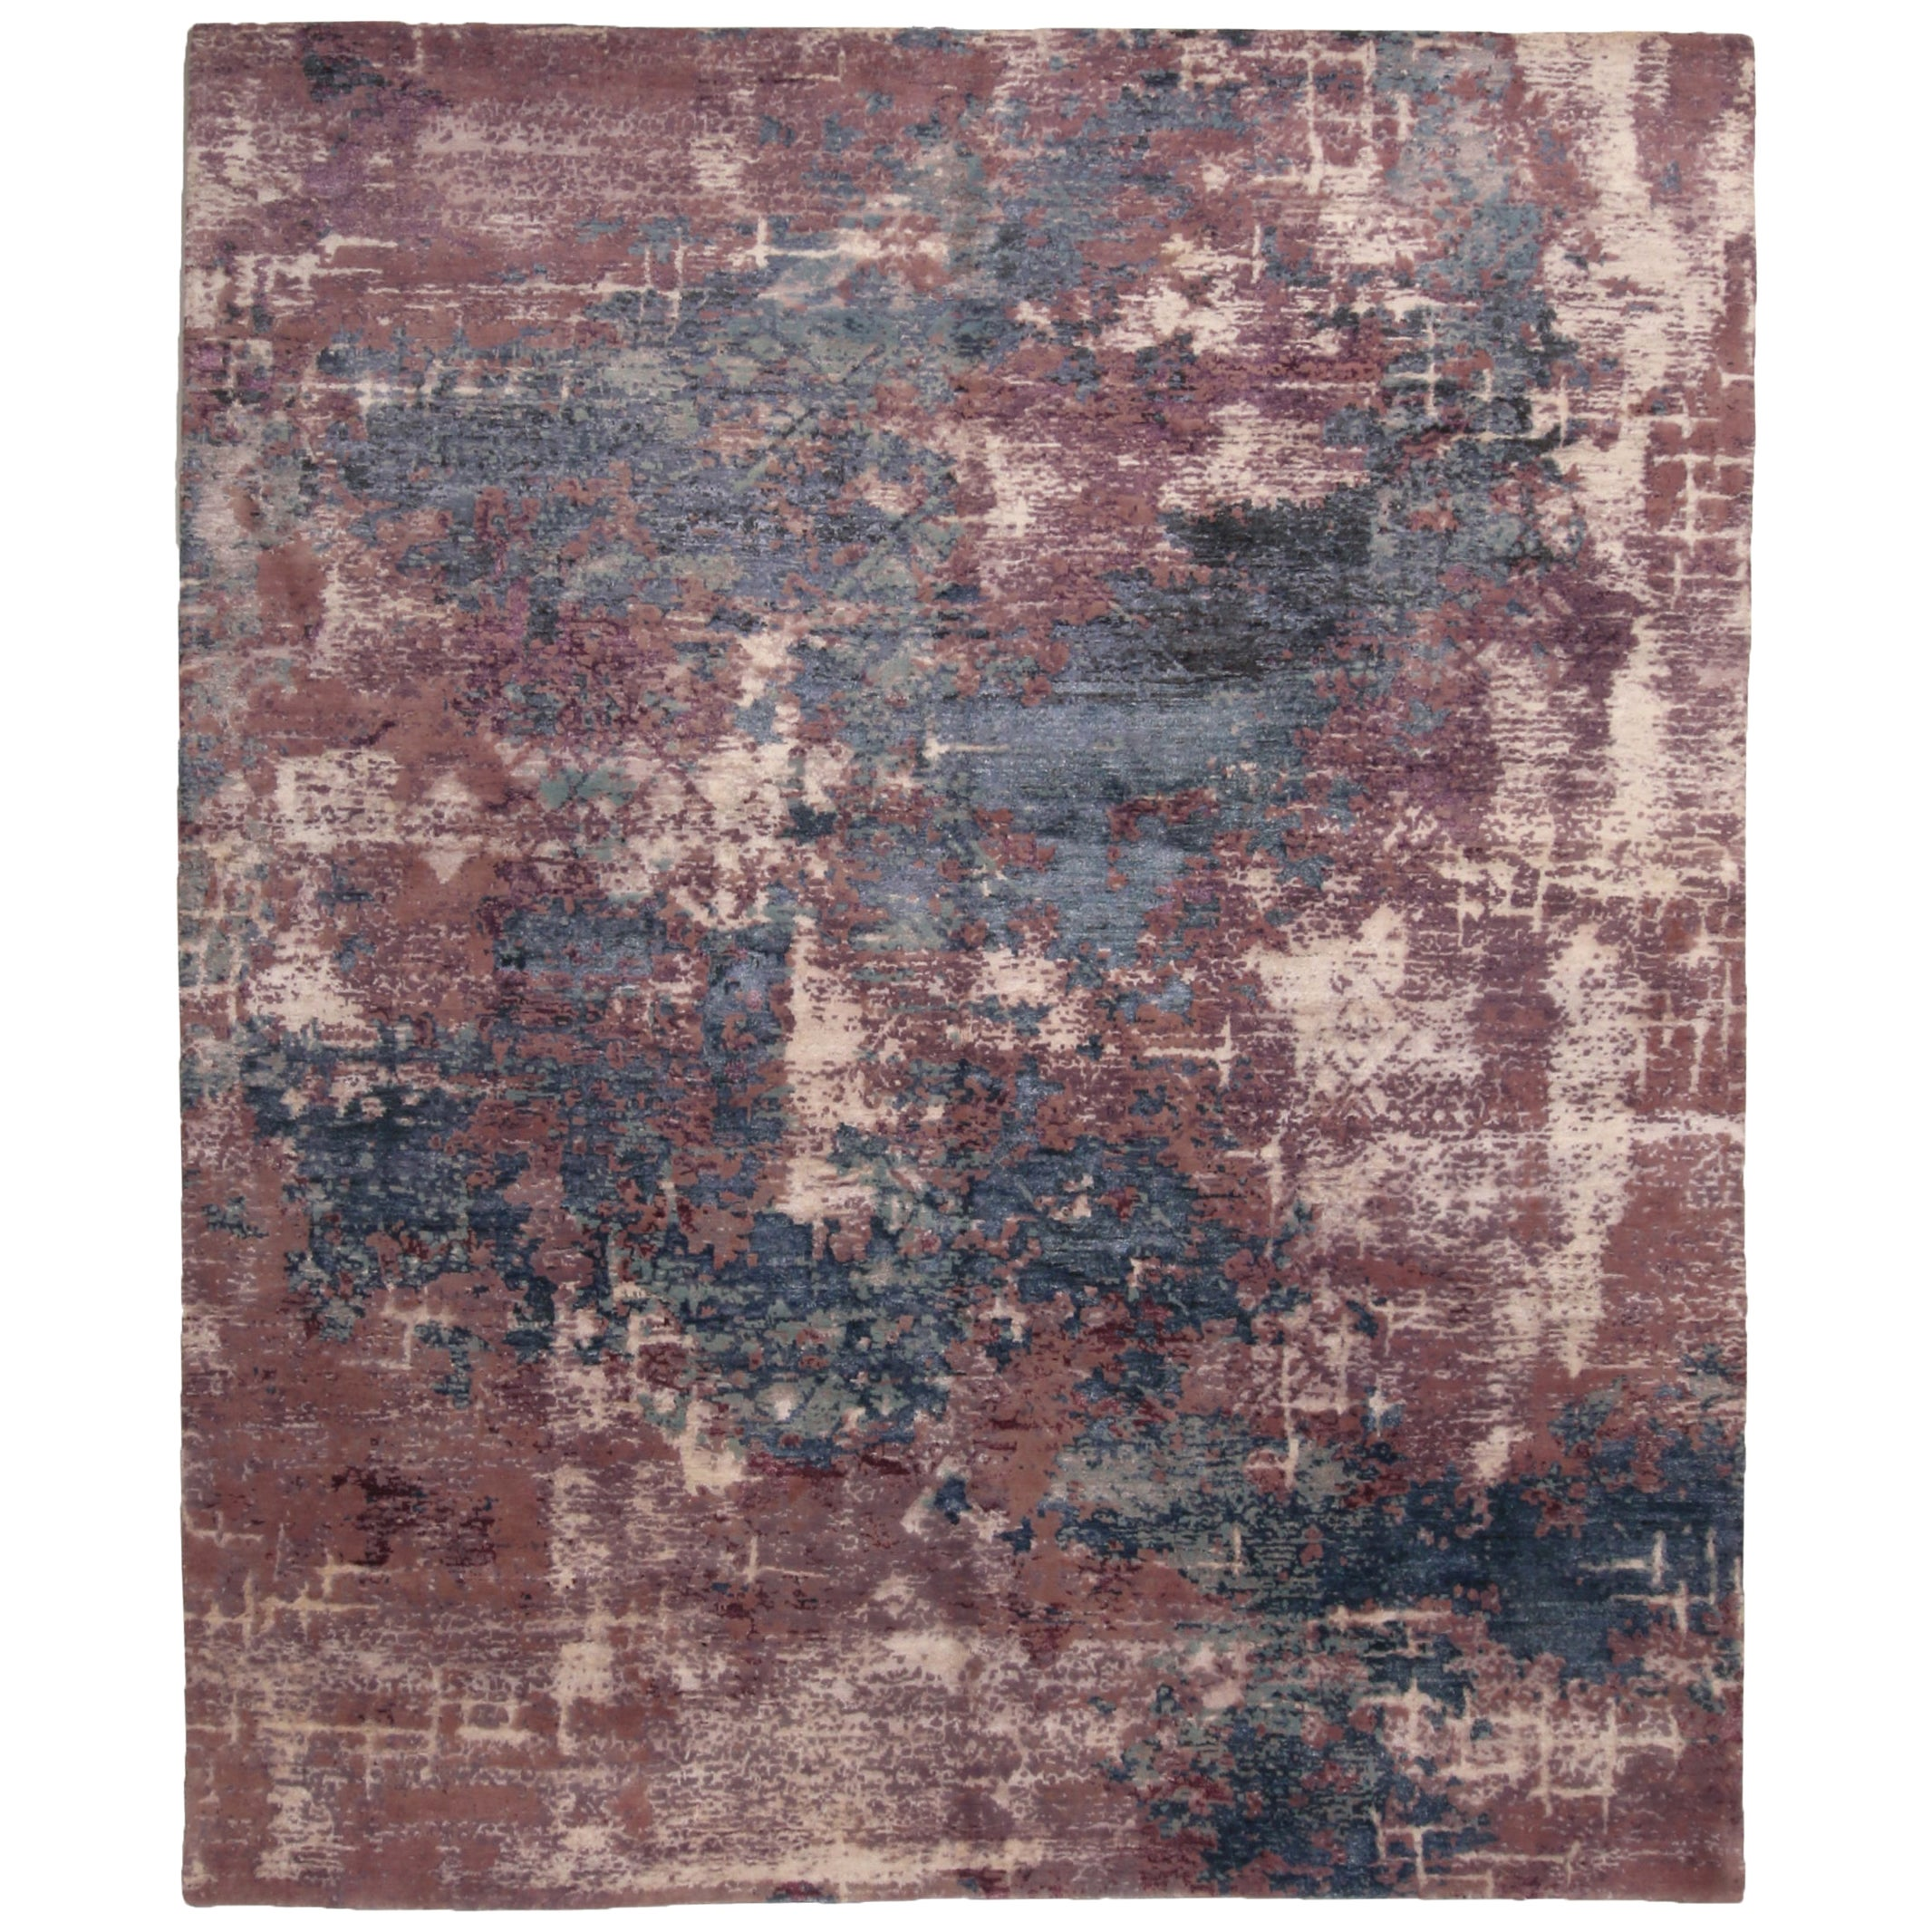 Rug & Kilim's Contemporary Blue and Purple Wool and Silk Rug